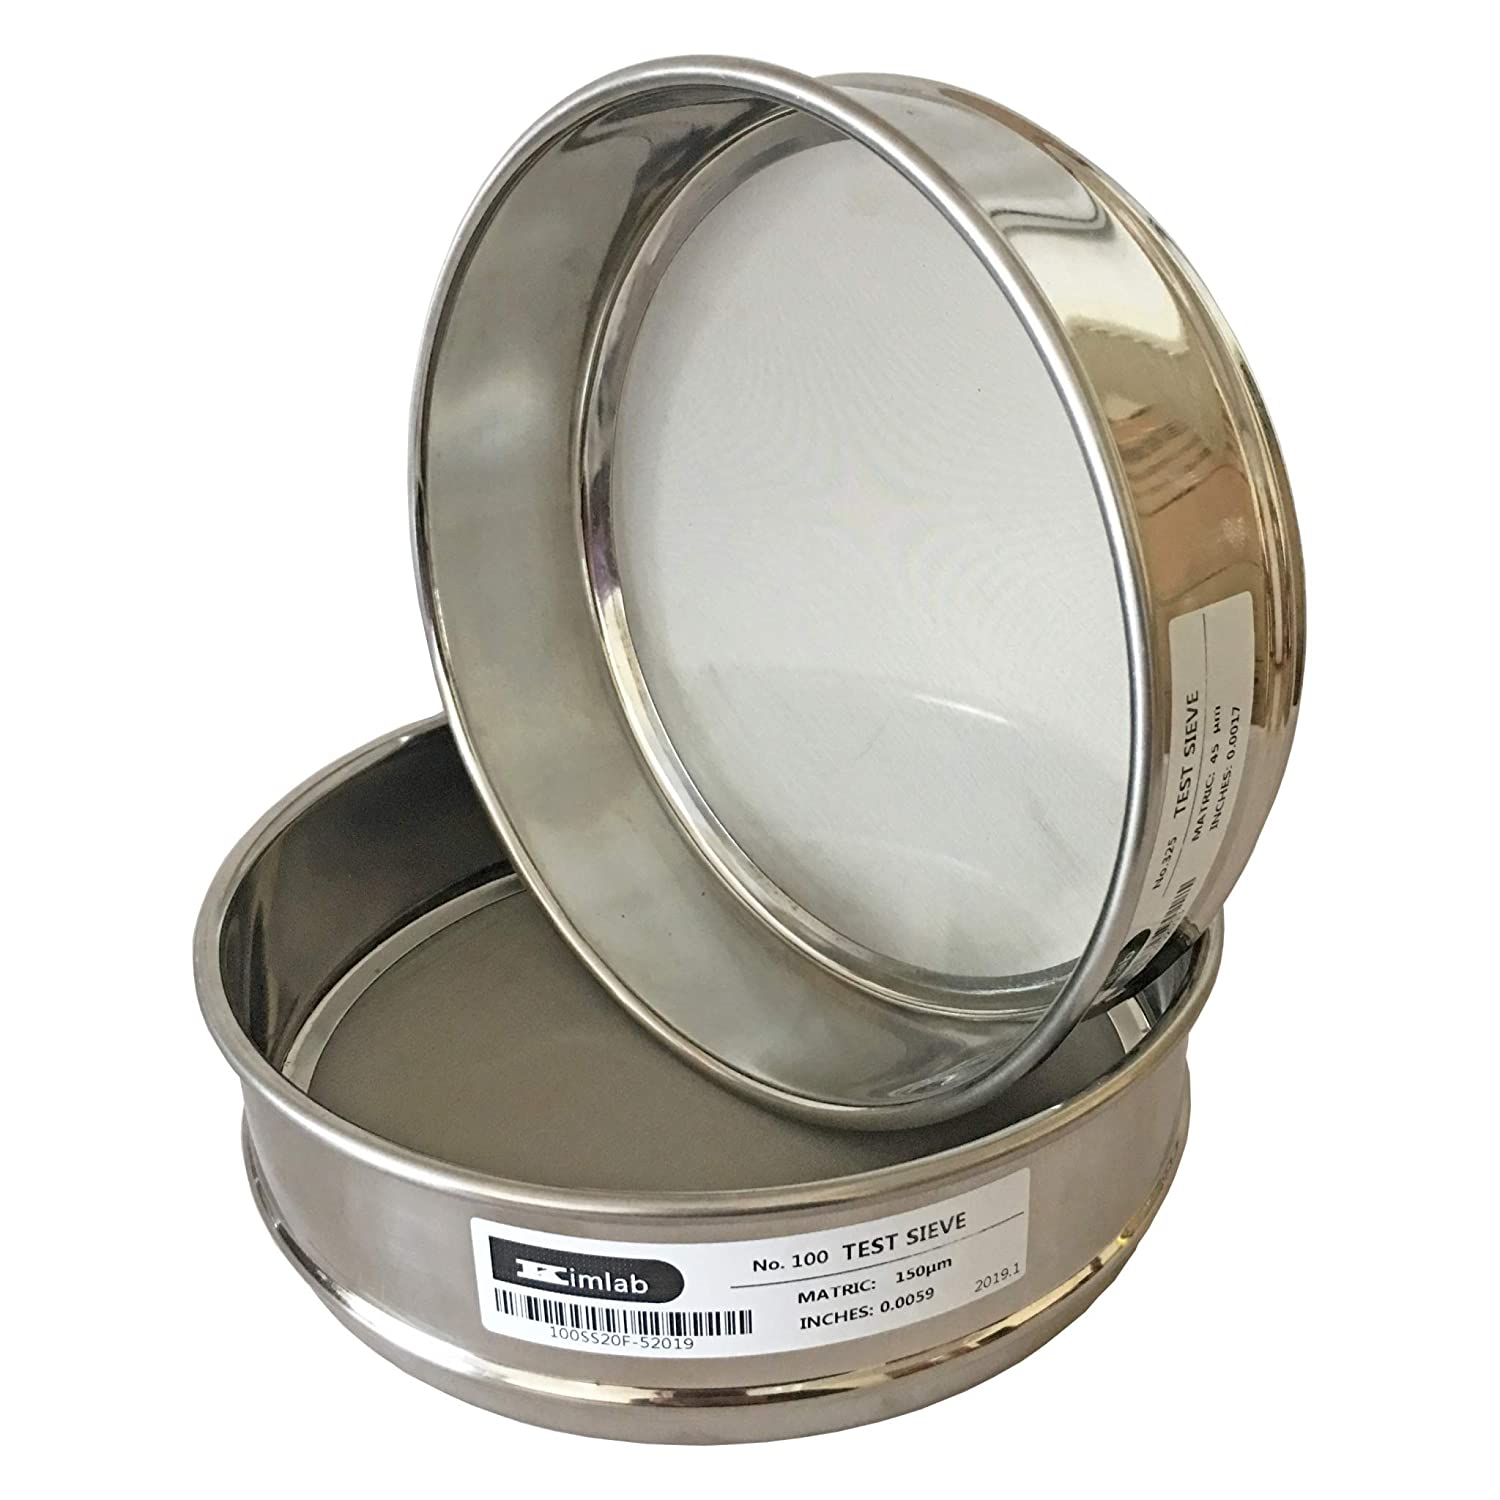 KimLab Free shipping anywhere latest in the nation ISO3310 STD Test Sieve #60 Size Mesh Stain All 250μm